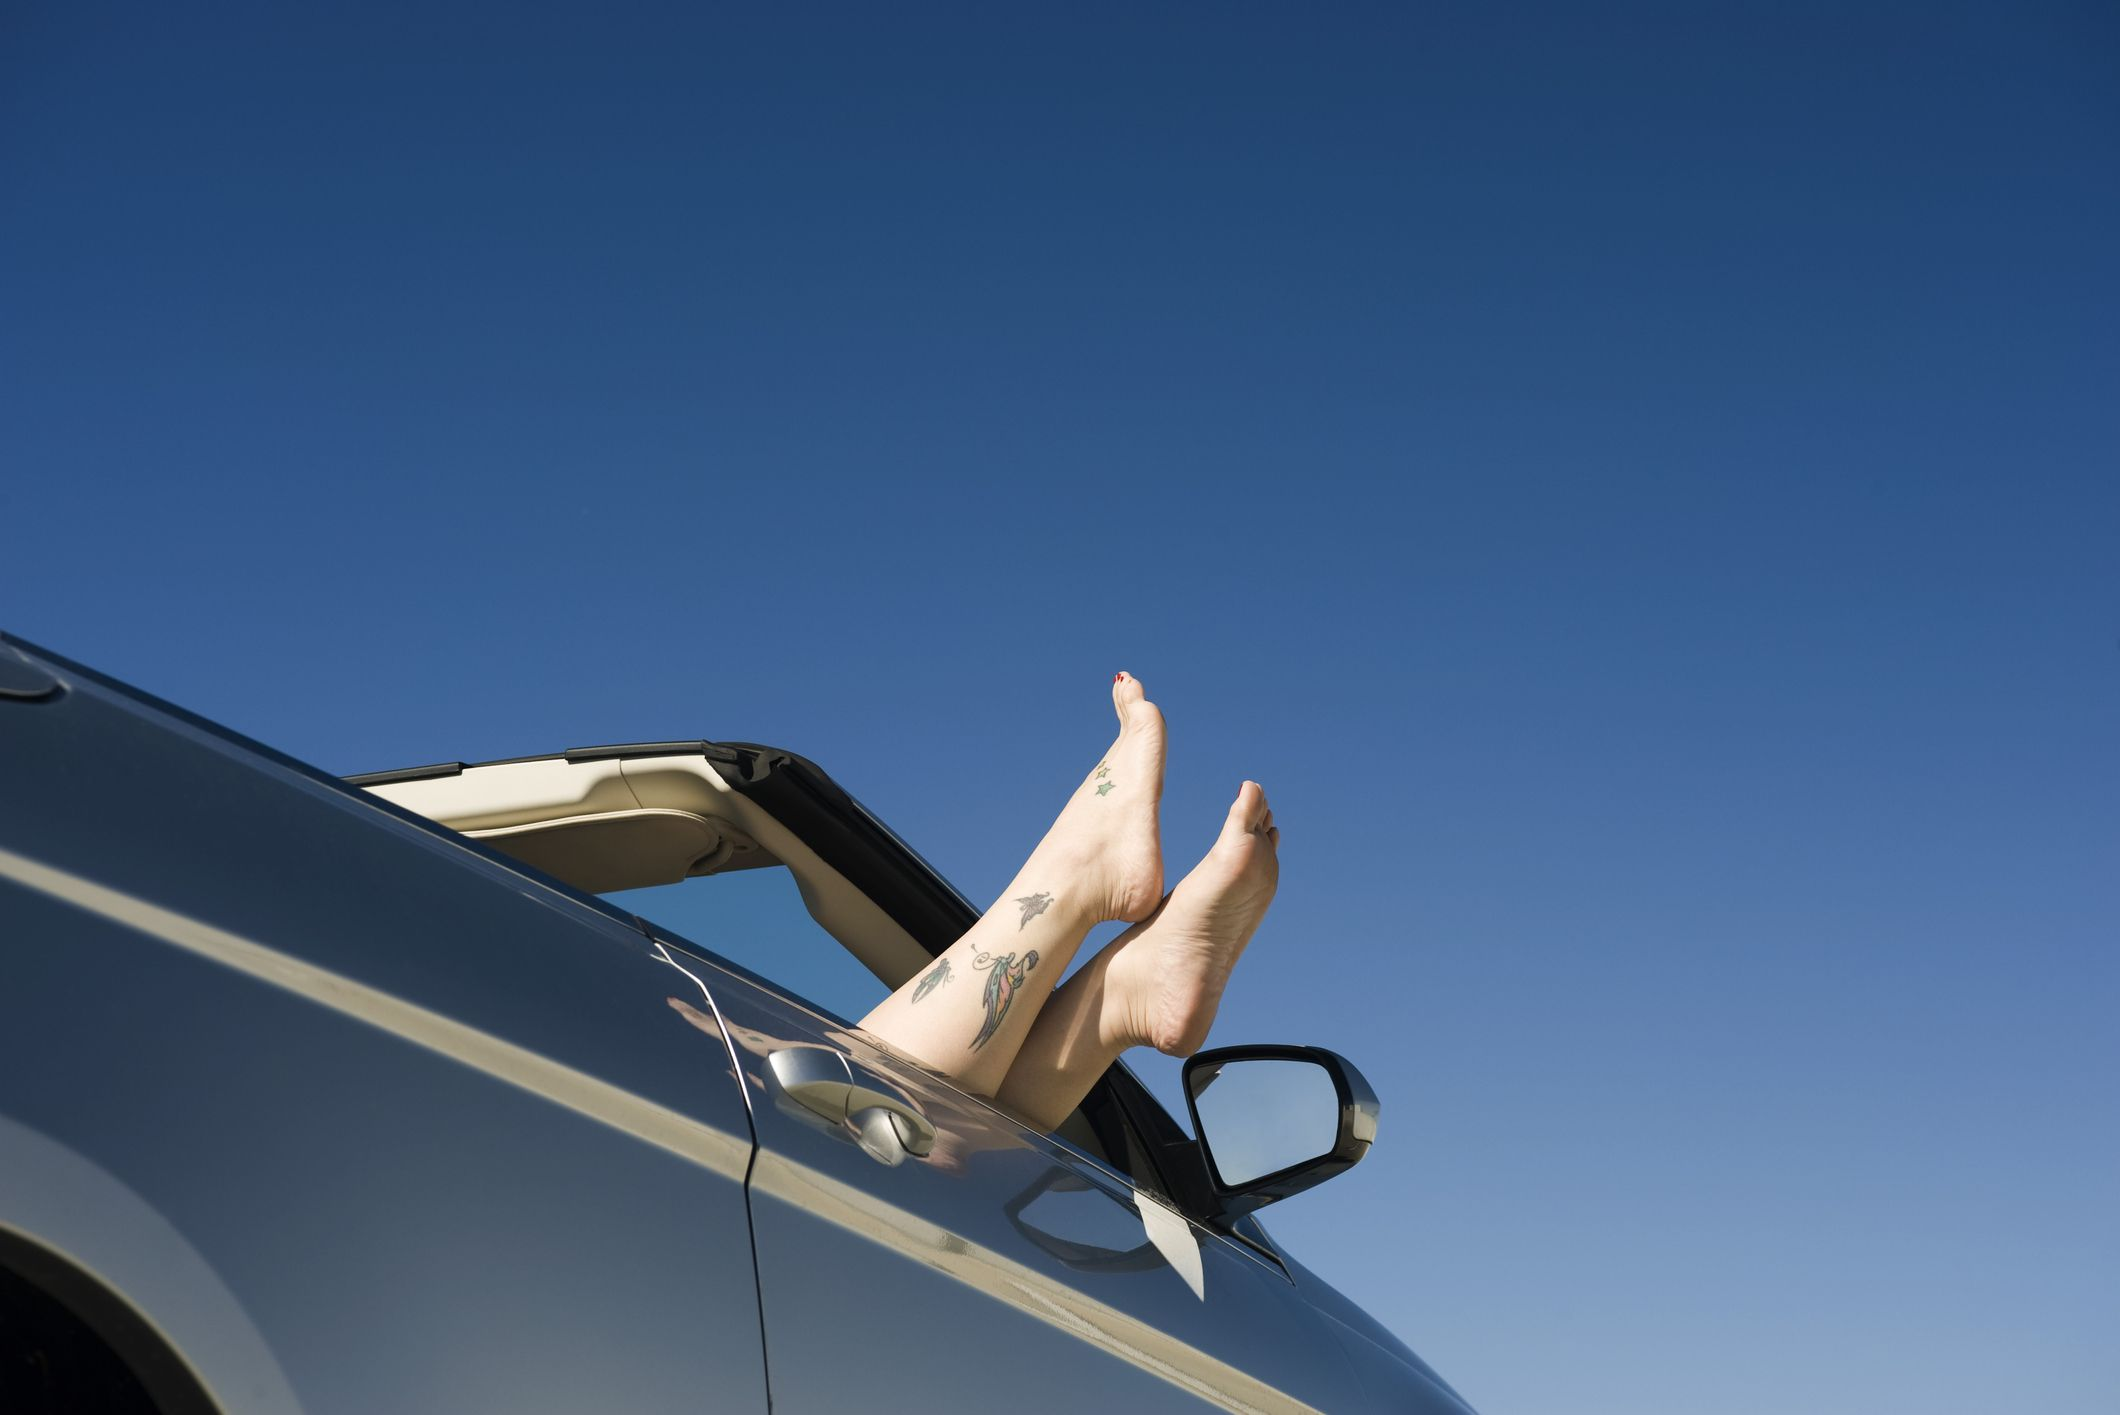 convertible with person feet hanging out window